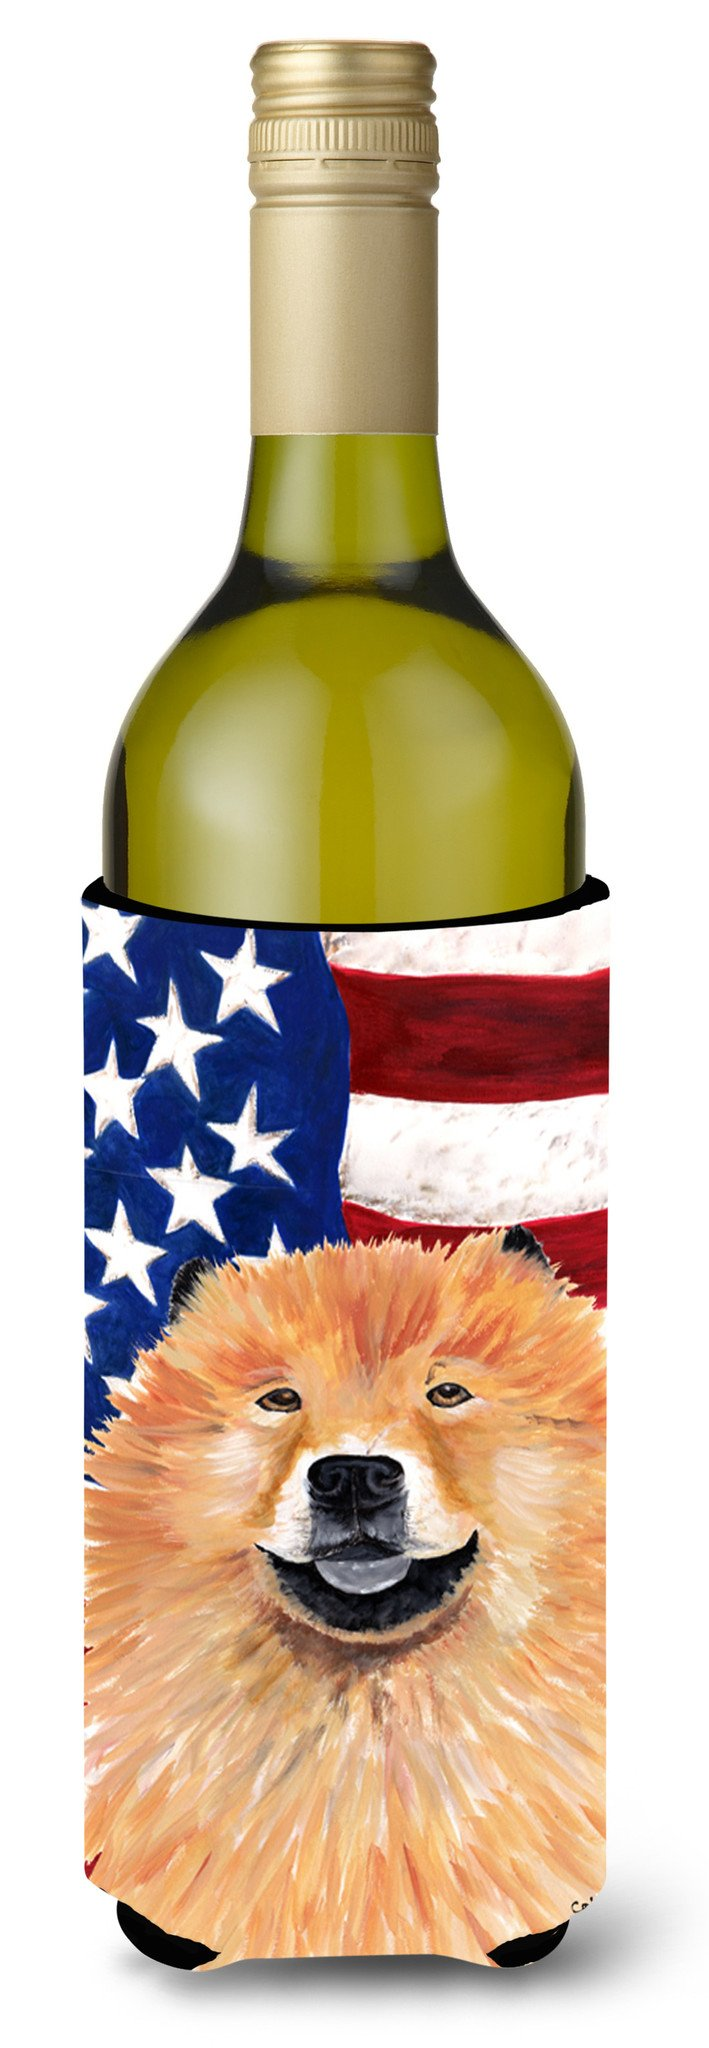 USA American Flag with Chow Chow Wine Bottle Beverage Insulator Beverage Insulator Hugger by Caroline's Treasures